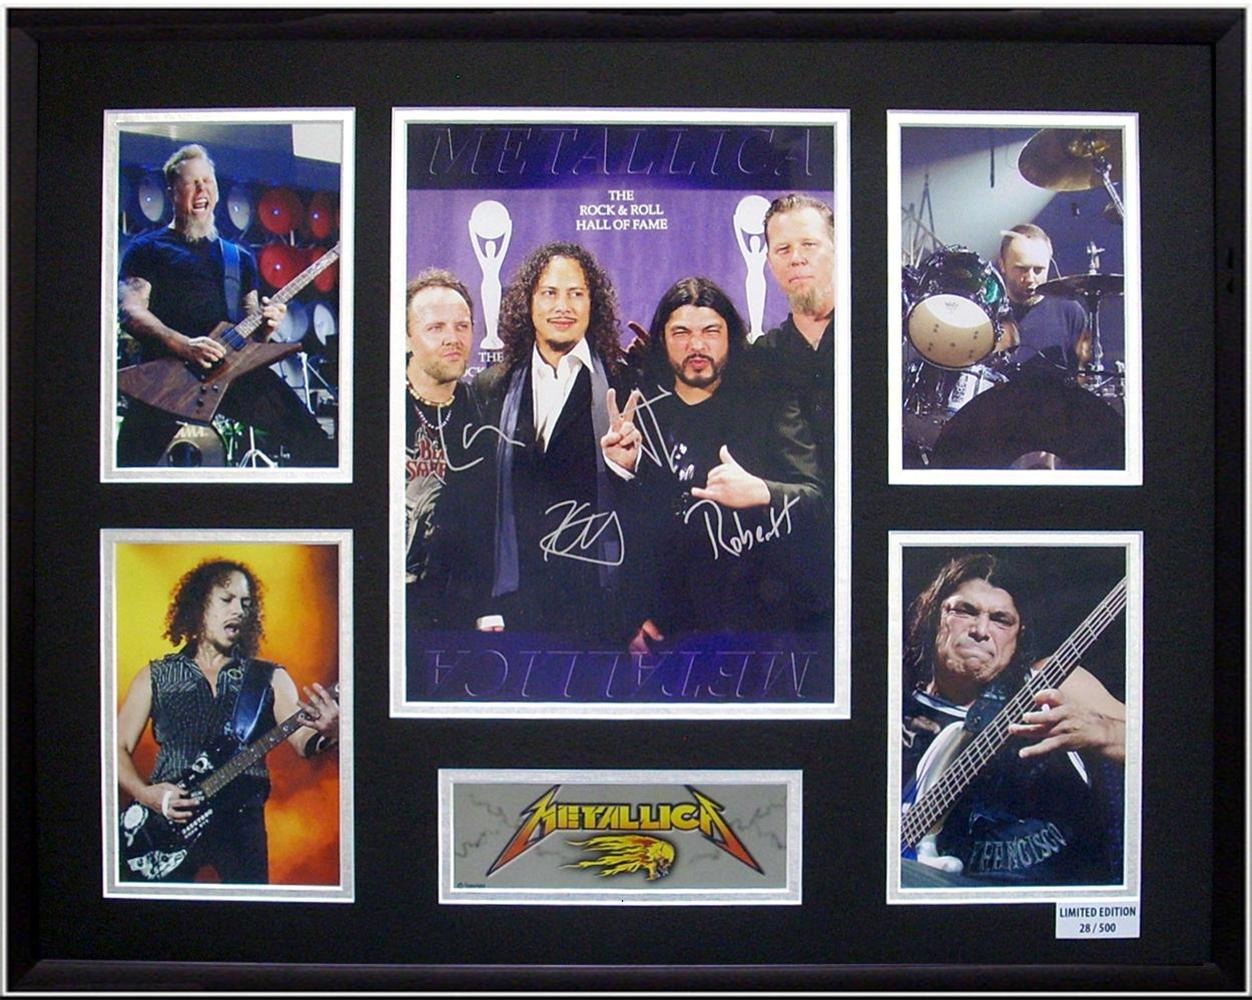 Metallica-Ltd-Ed-Framed-Picture-Display-Presentation